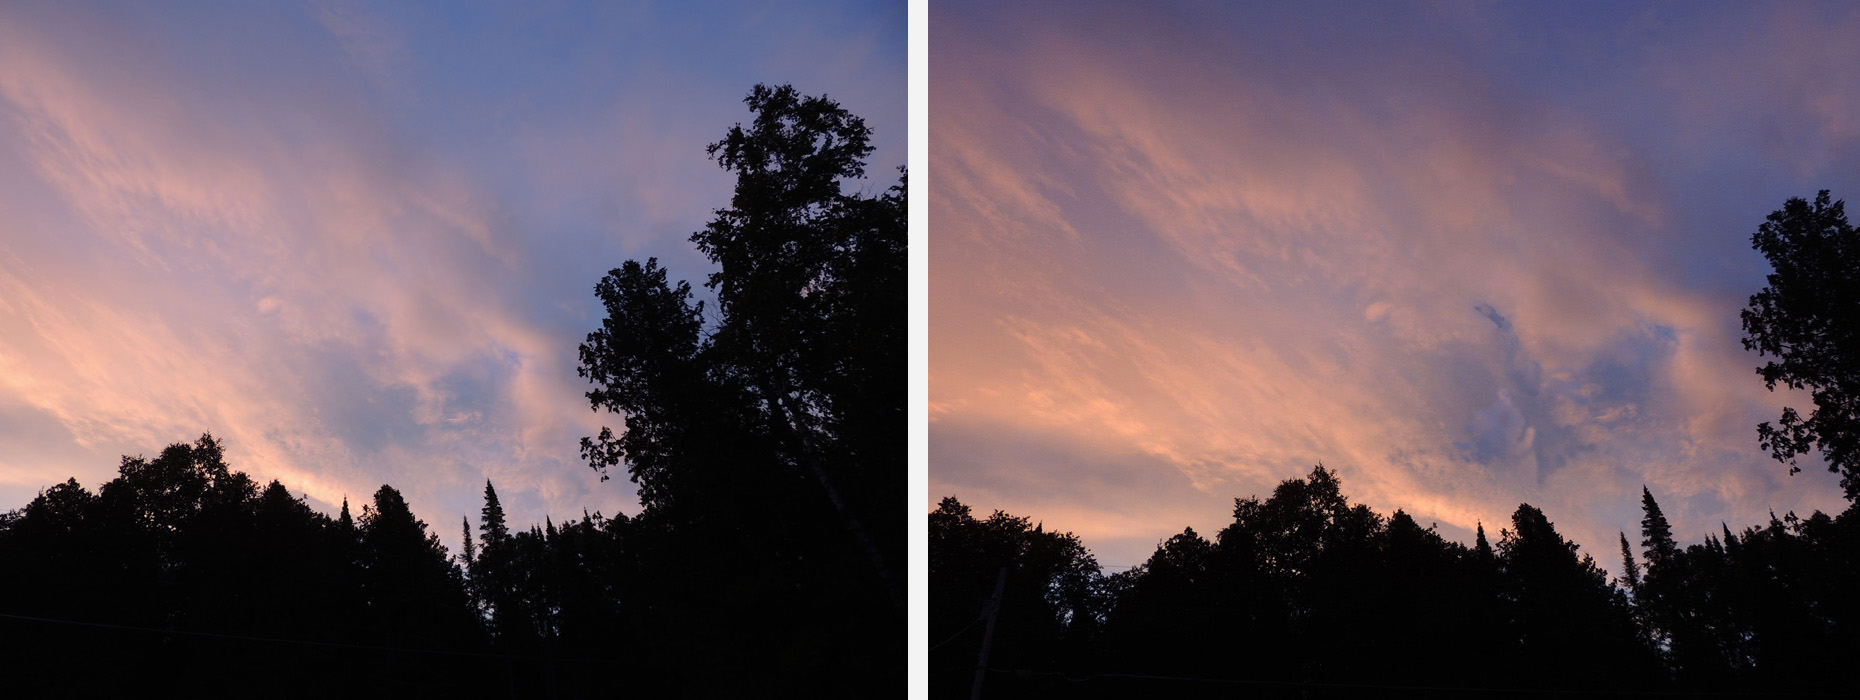 On the left the camera saw clouds - On the right my mind saw a beautiful goose-like bird flying up from lower left to right